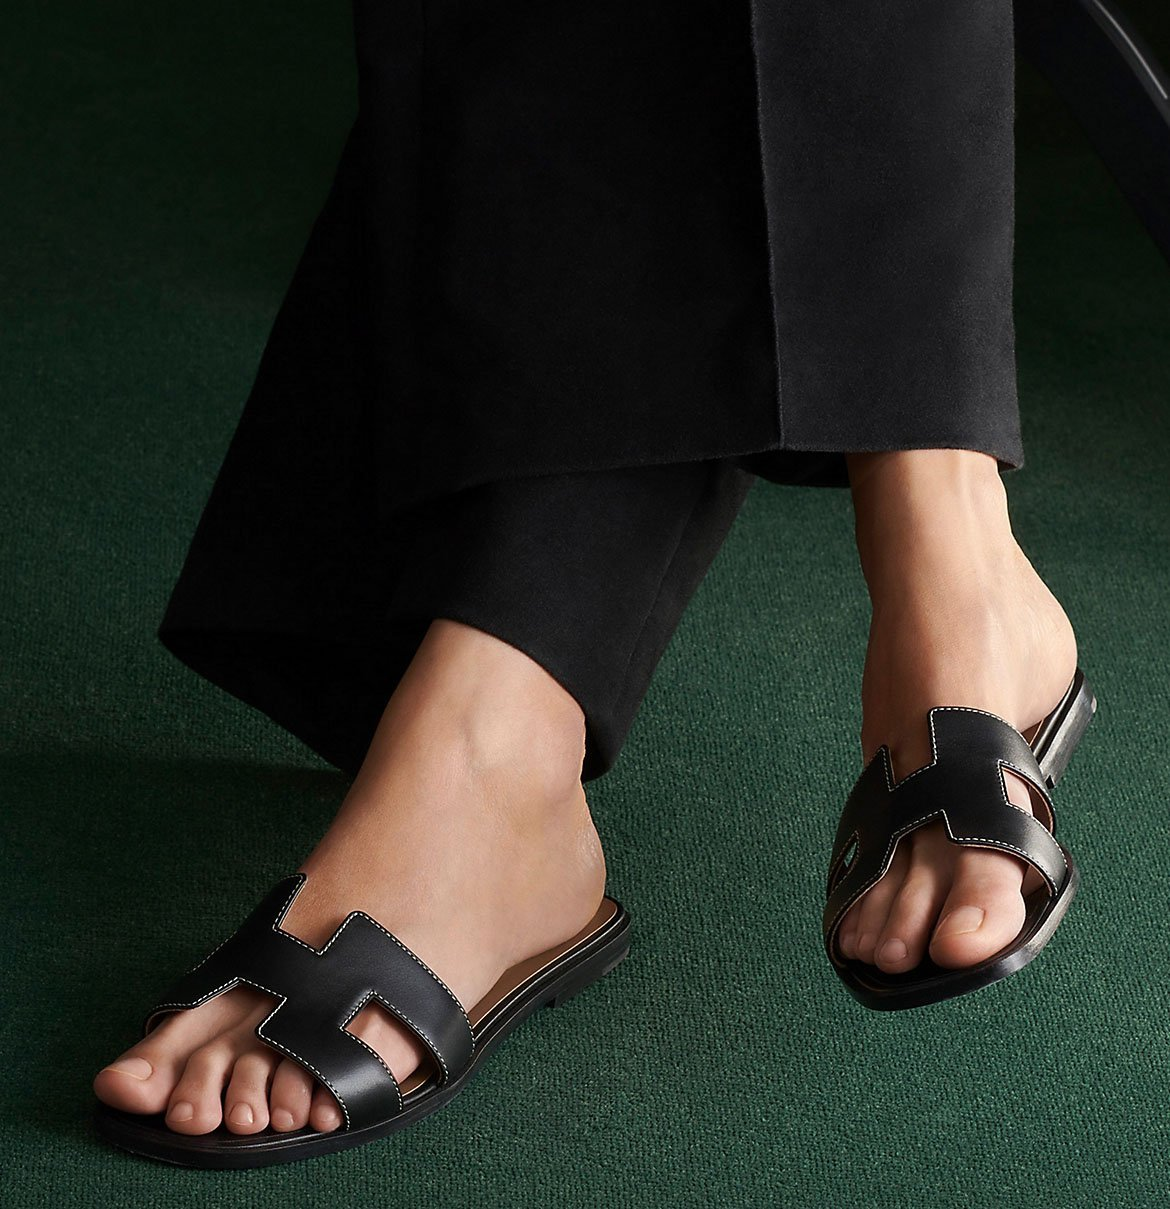 Invest in these timeless Hermes Oran sandals, which can go well with just about any dress